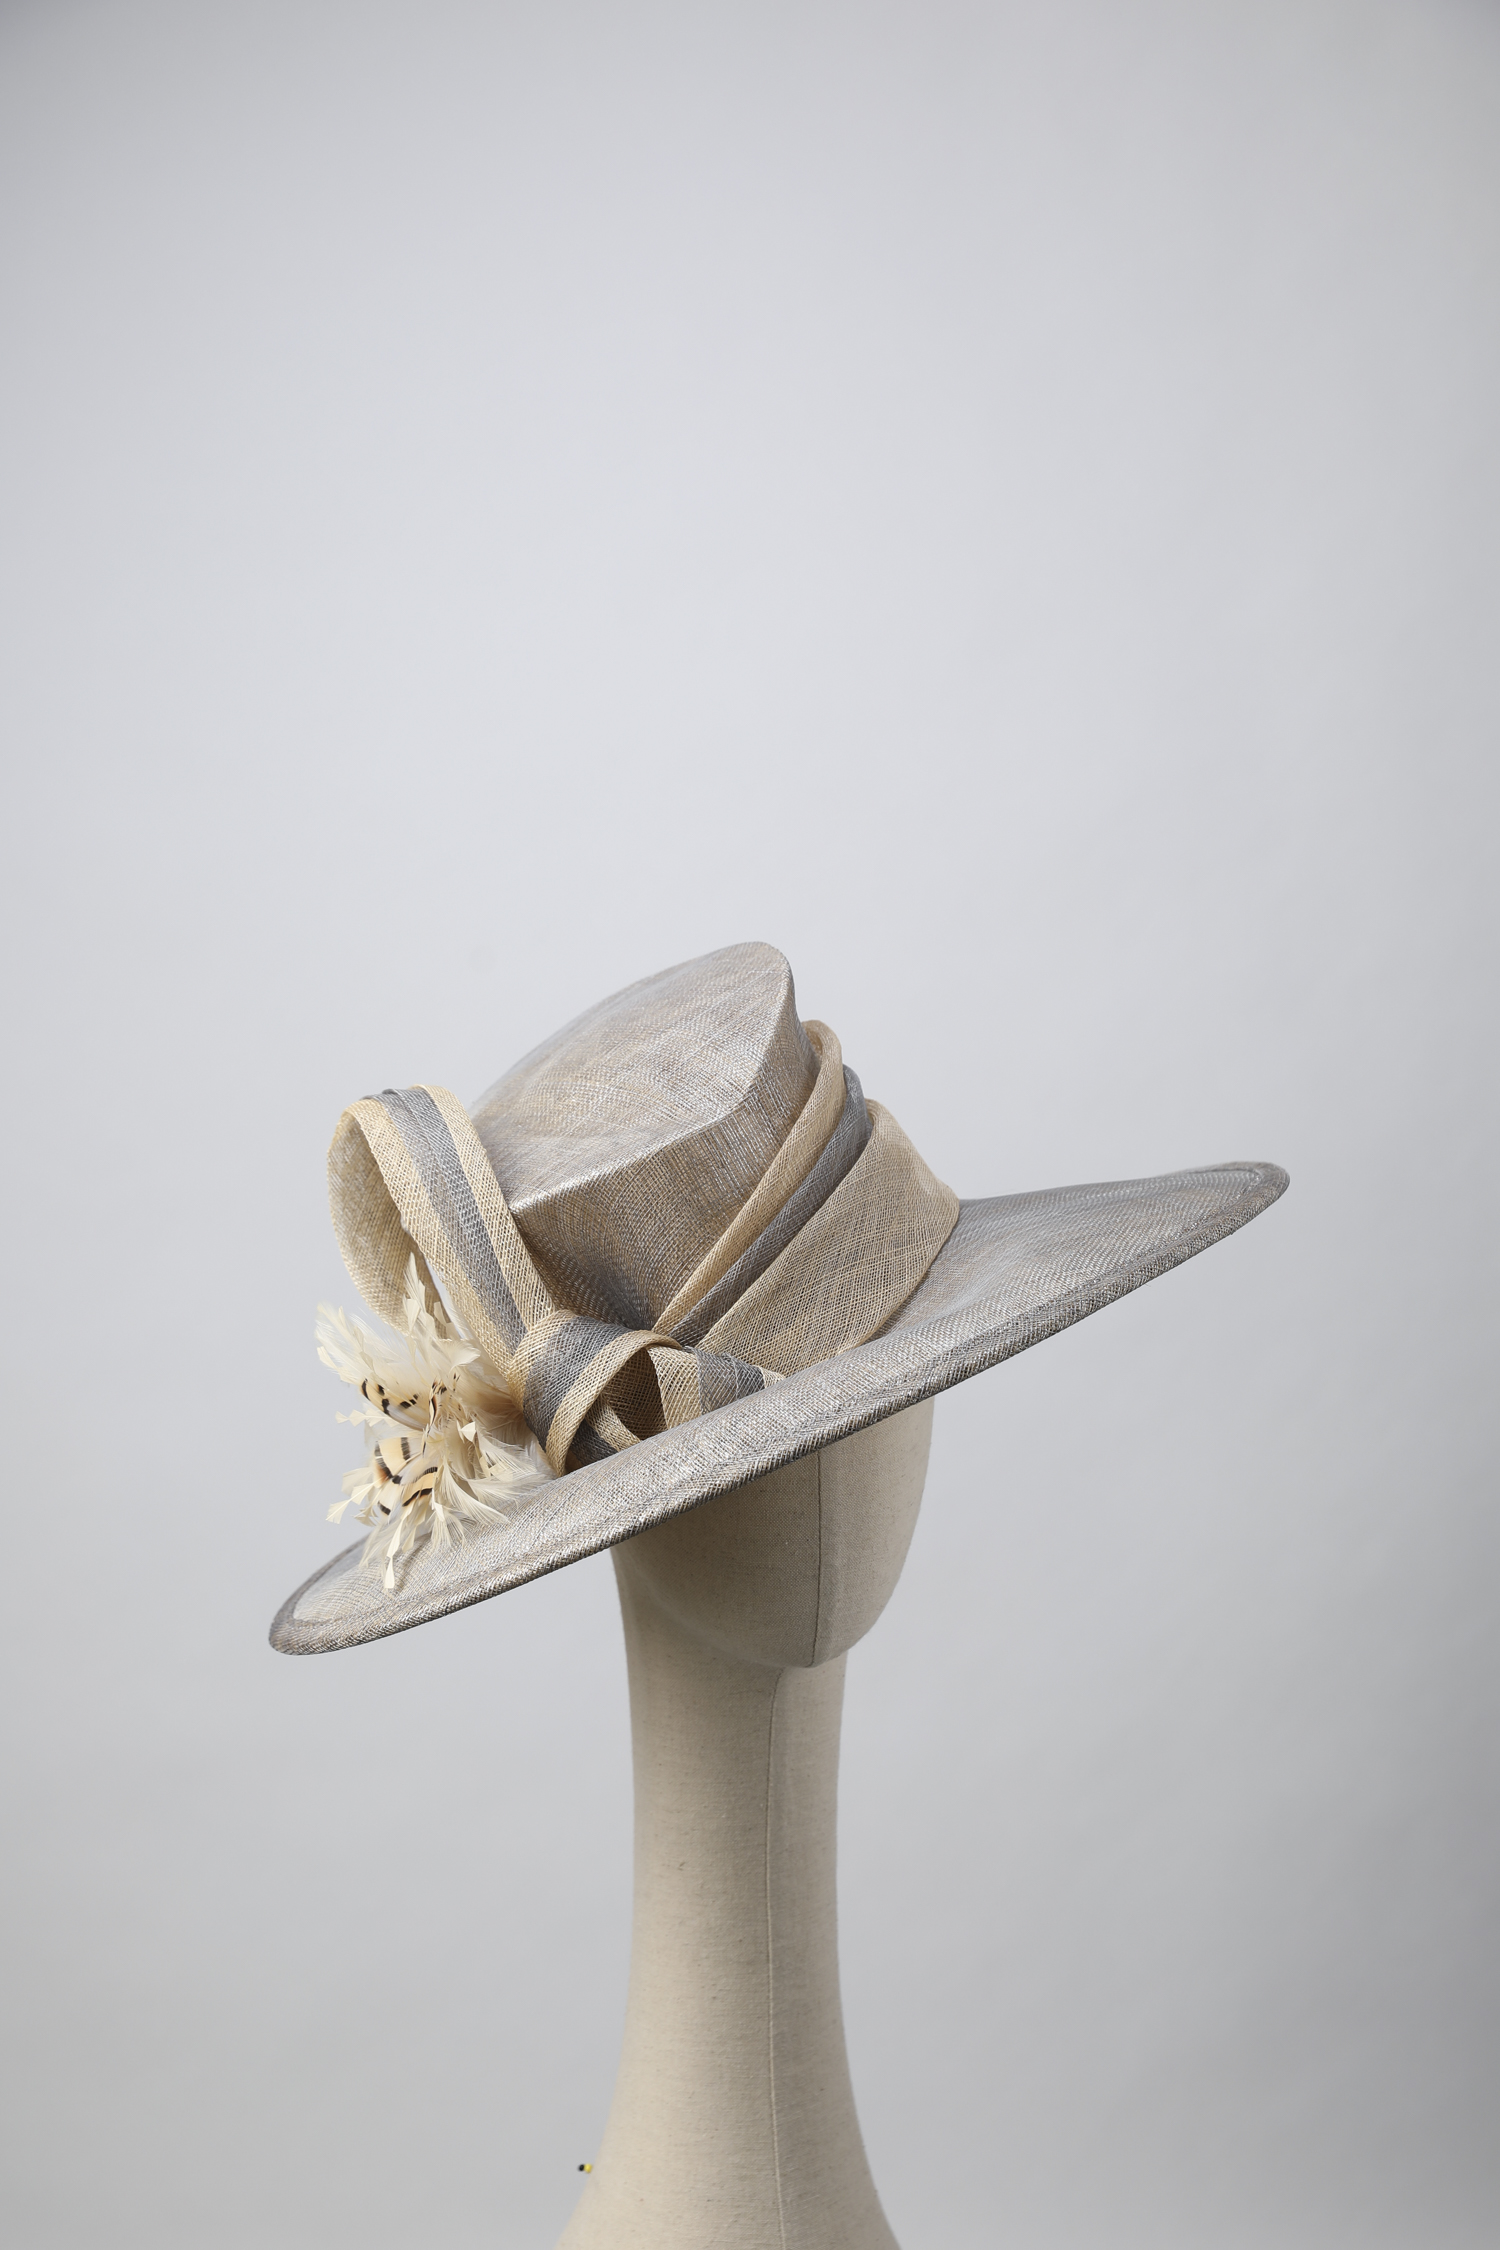 Copy of Jaycow Millinery by Jay Cheng Sample Stock 2019 (33).jpg